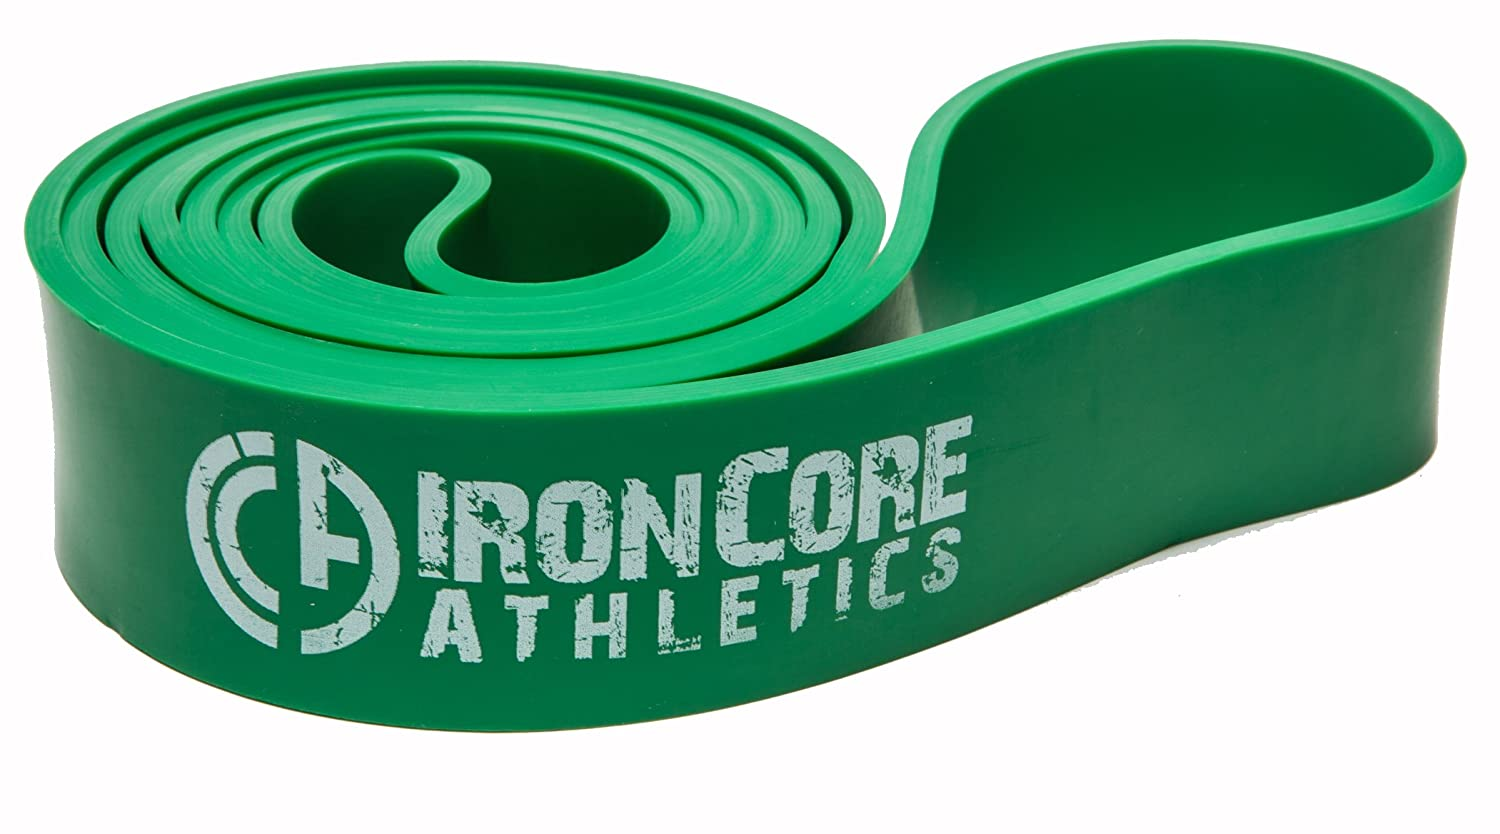 4 Different Resistance Levels to choose from Iron Core Athletics Pull Up Assistance Bands Commercial Gym Quality 41 Loop Exercise Pull-Up Bands